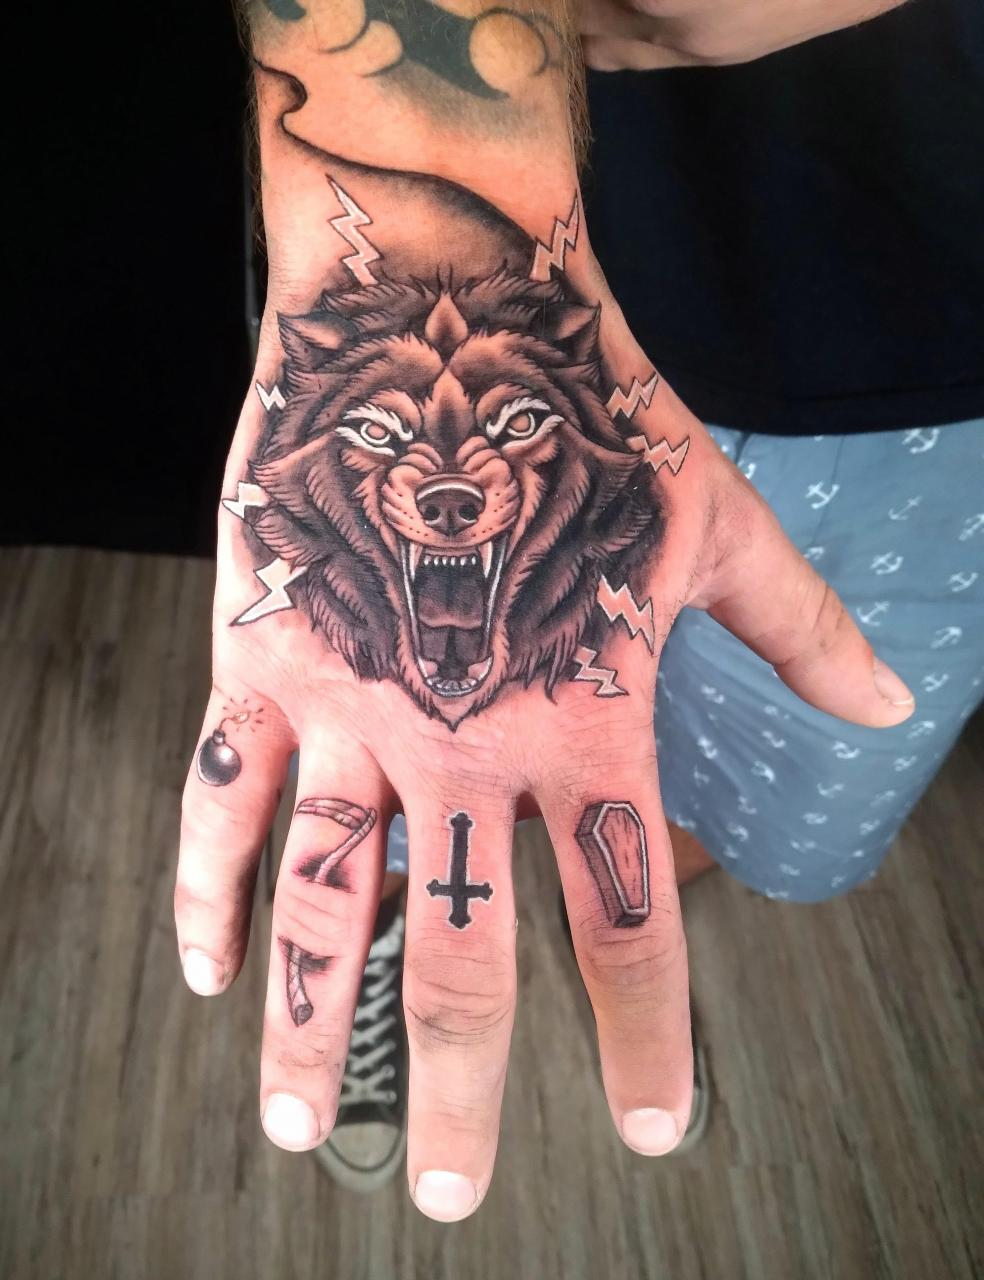 Hand and finger tattoos by Woodrow Wilson Cowher in East Palestine, OH